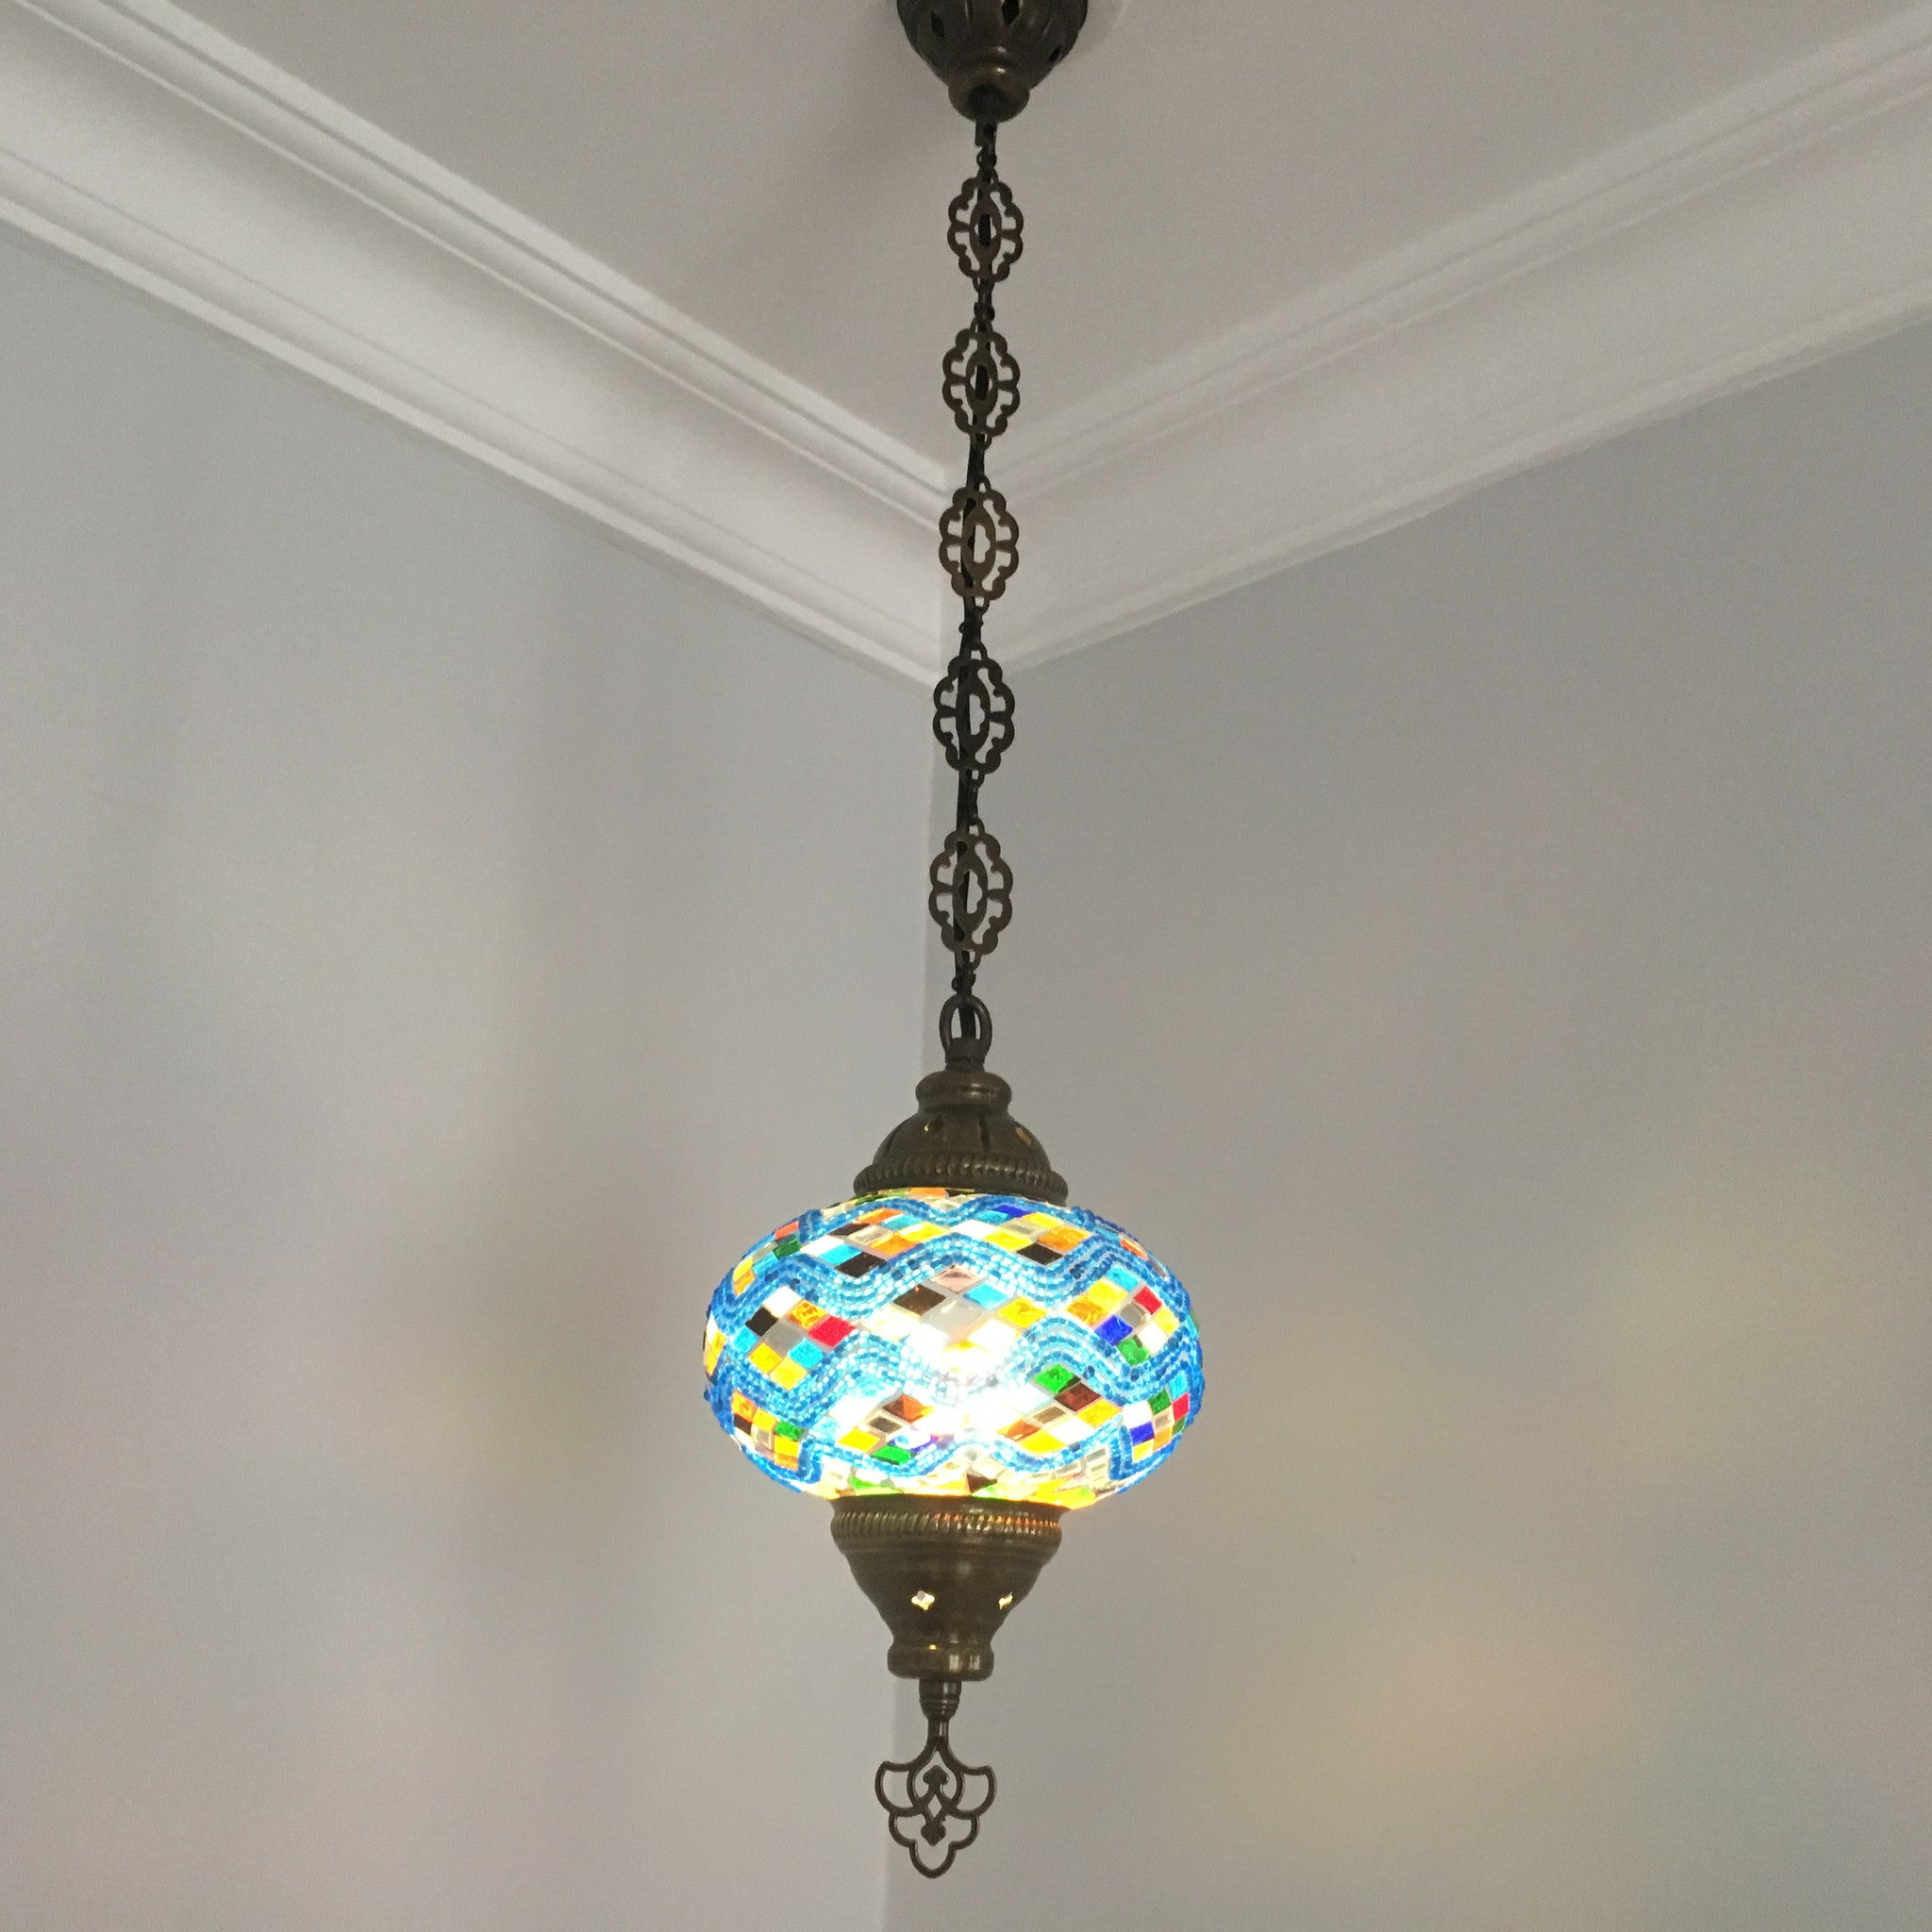 Turkish Handmade Mosaic Hanging Lamp Large Globe Special Edition - Long hanging light fixtures